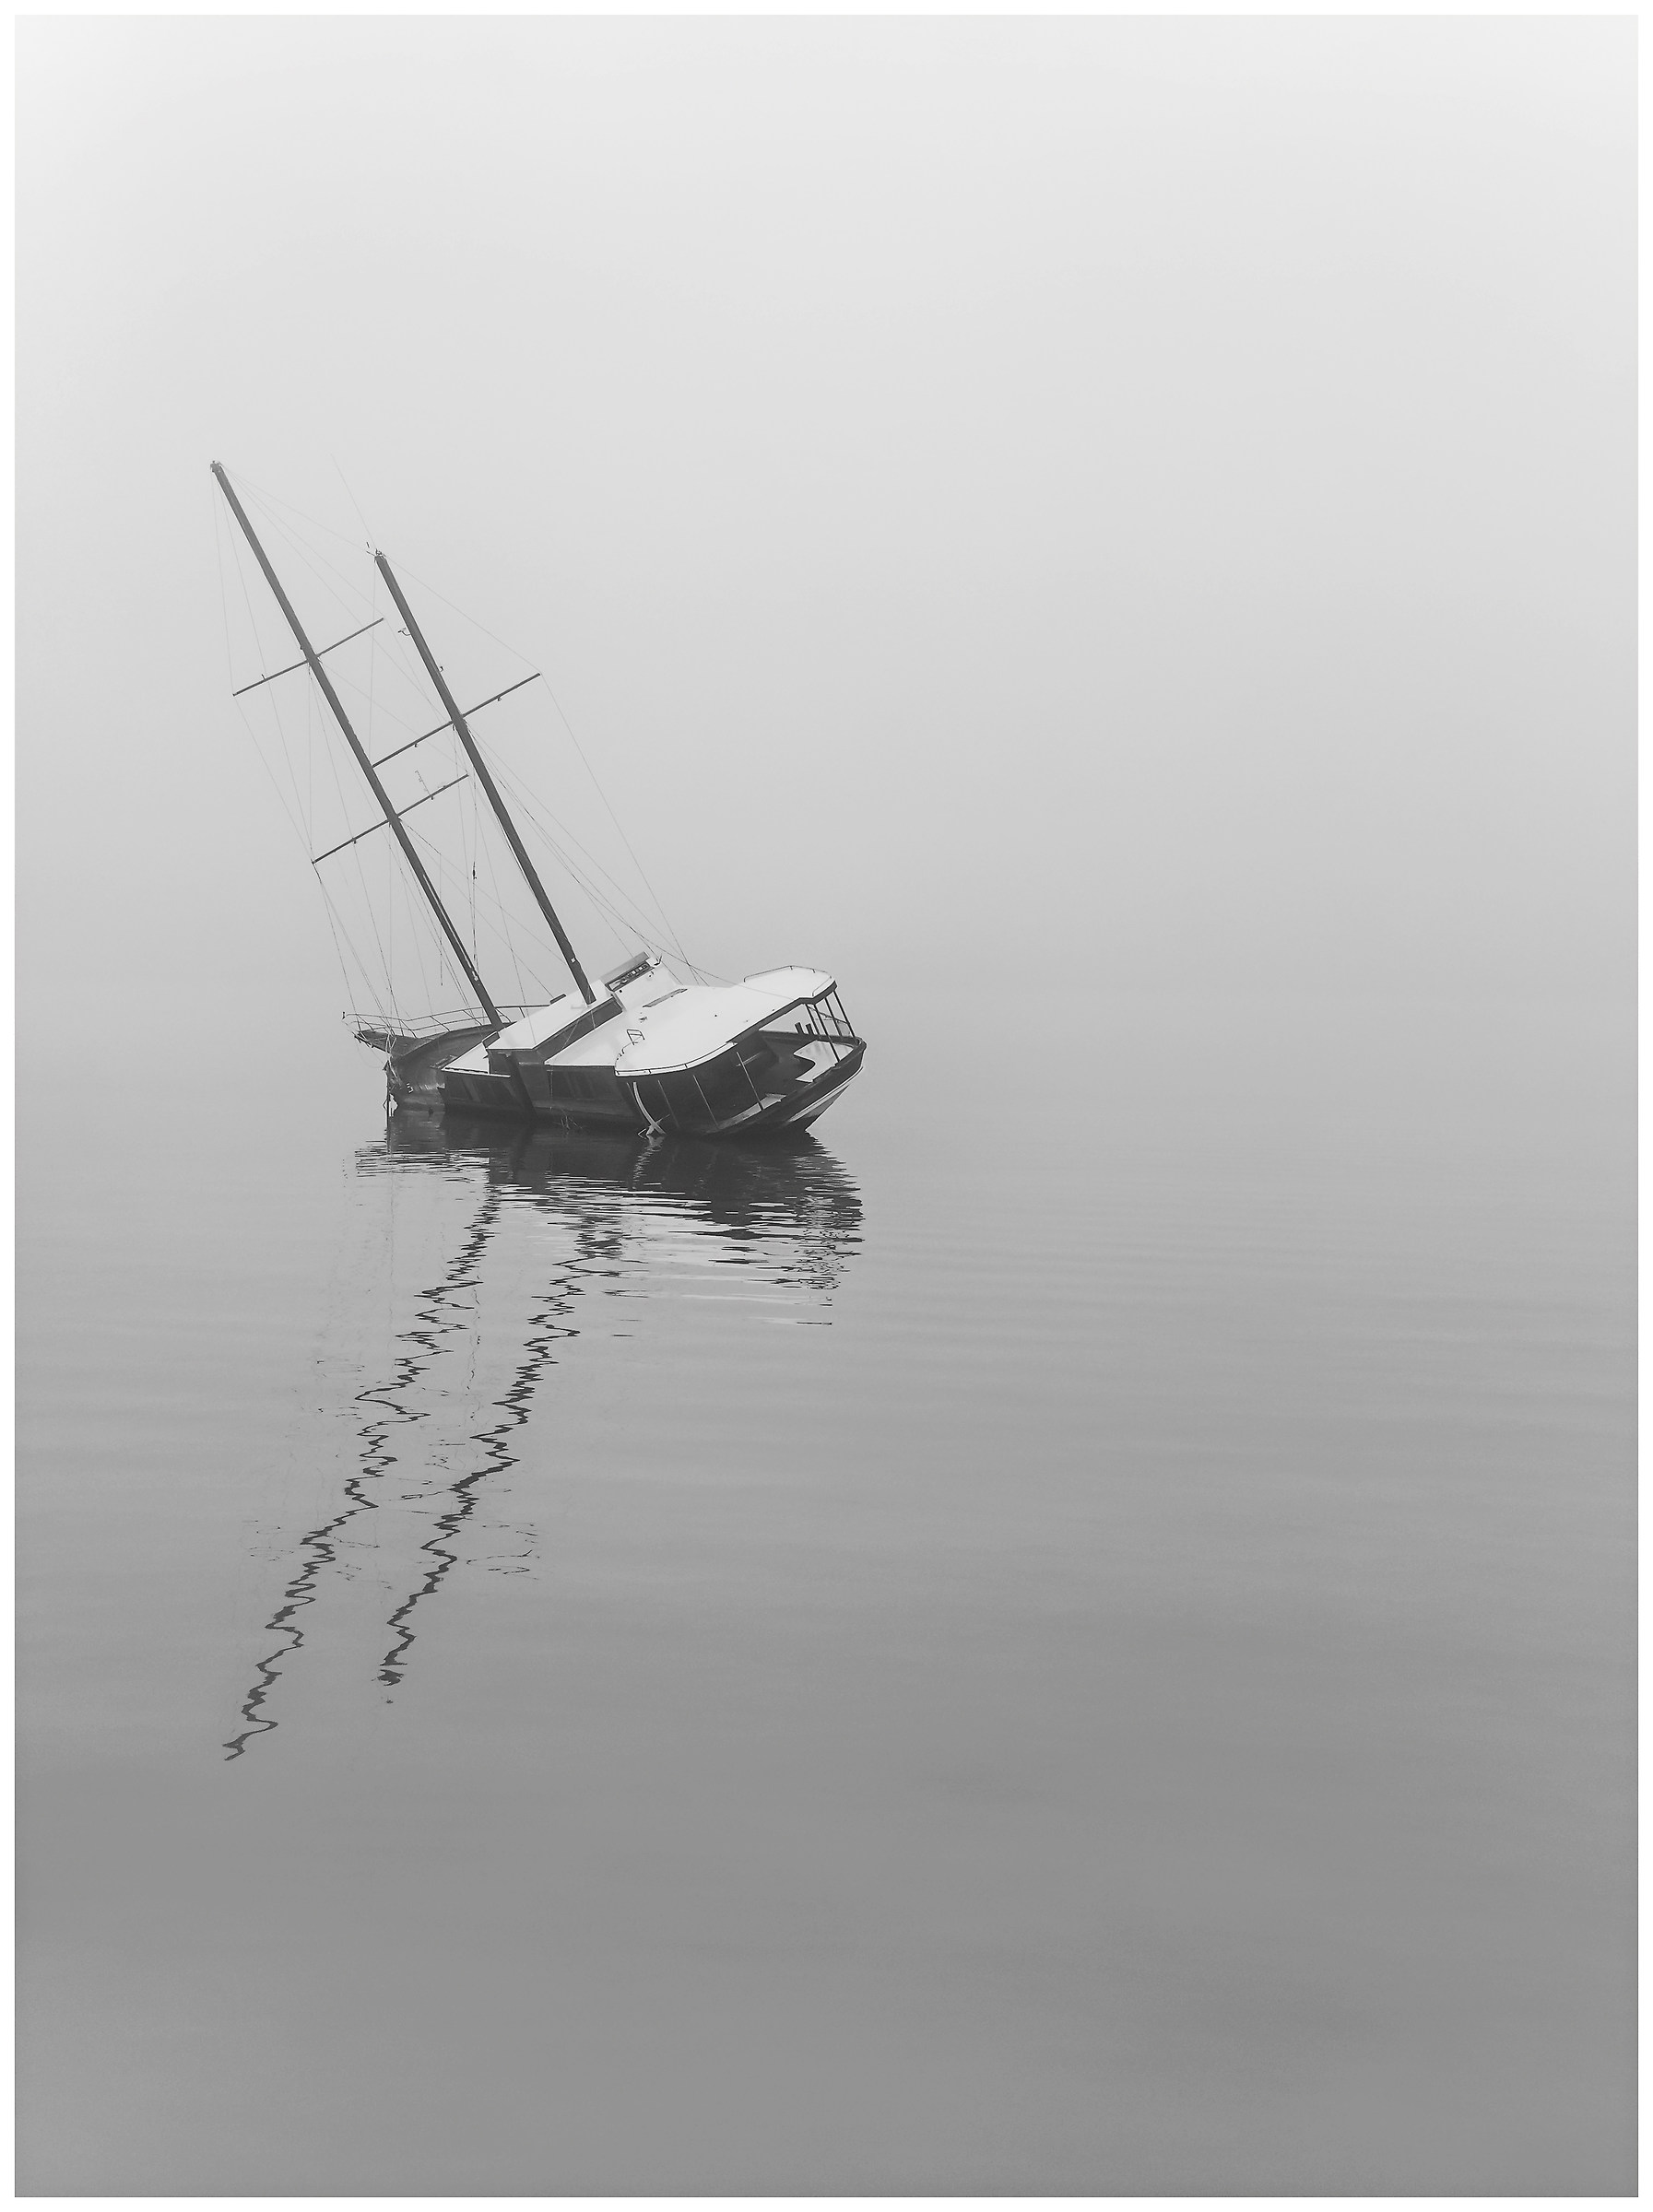 Lies and immersed in the fog!...